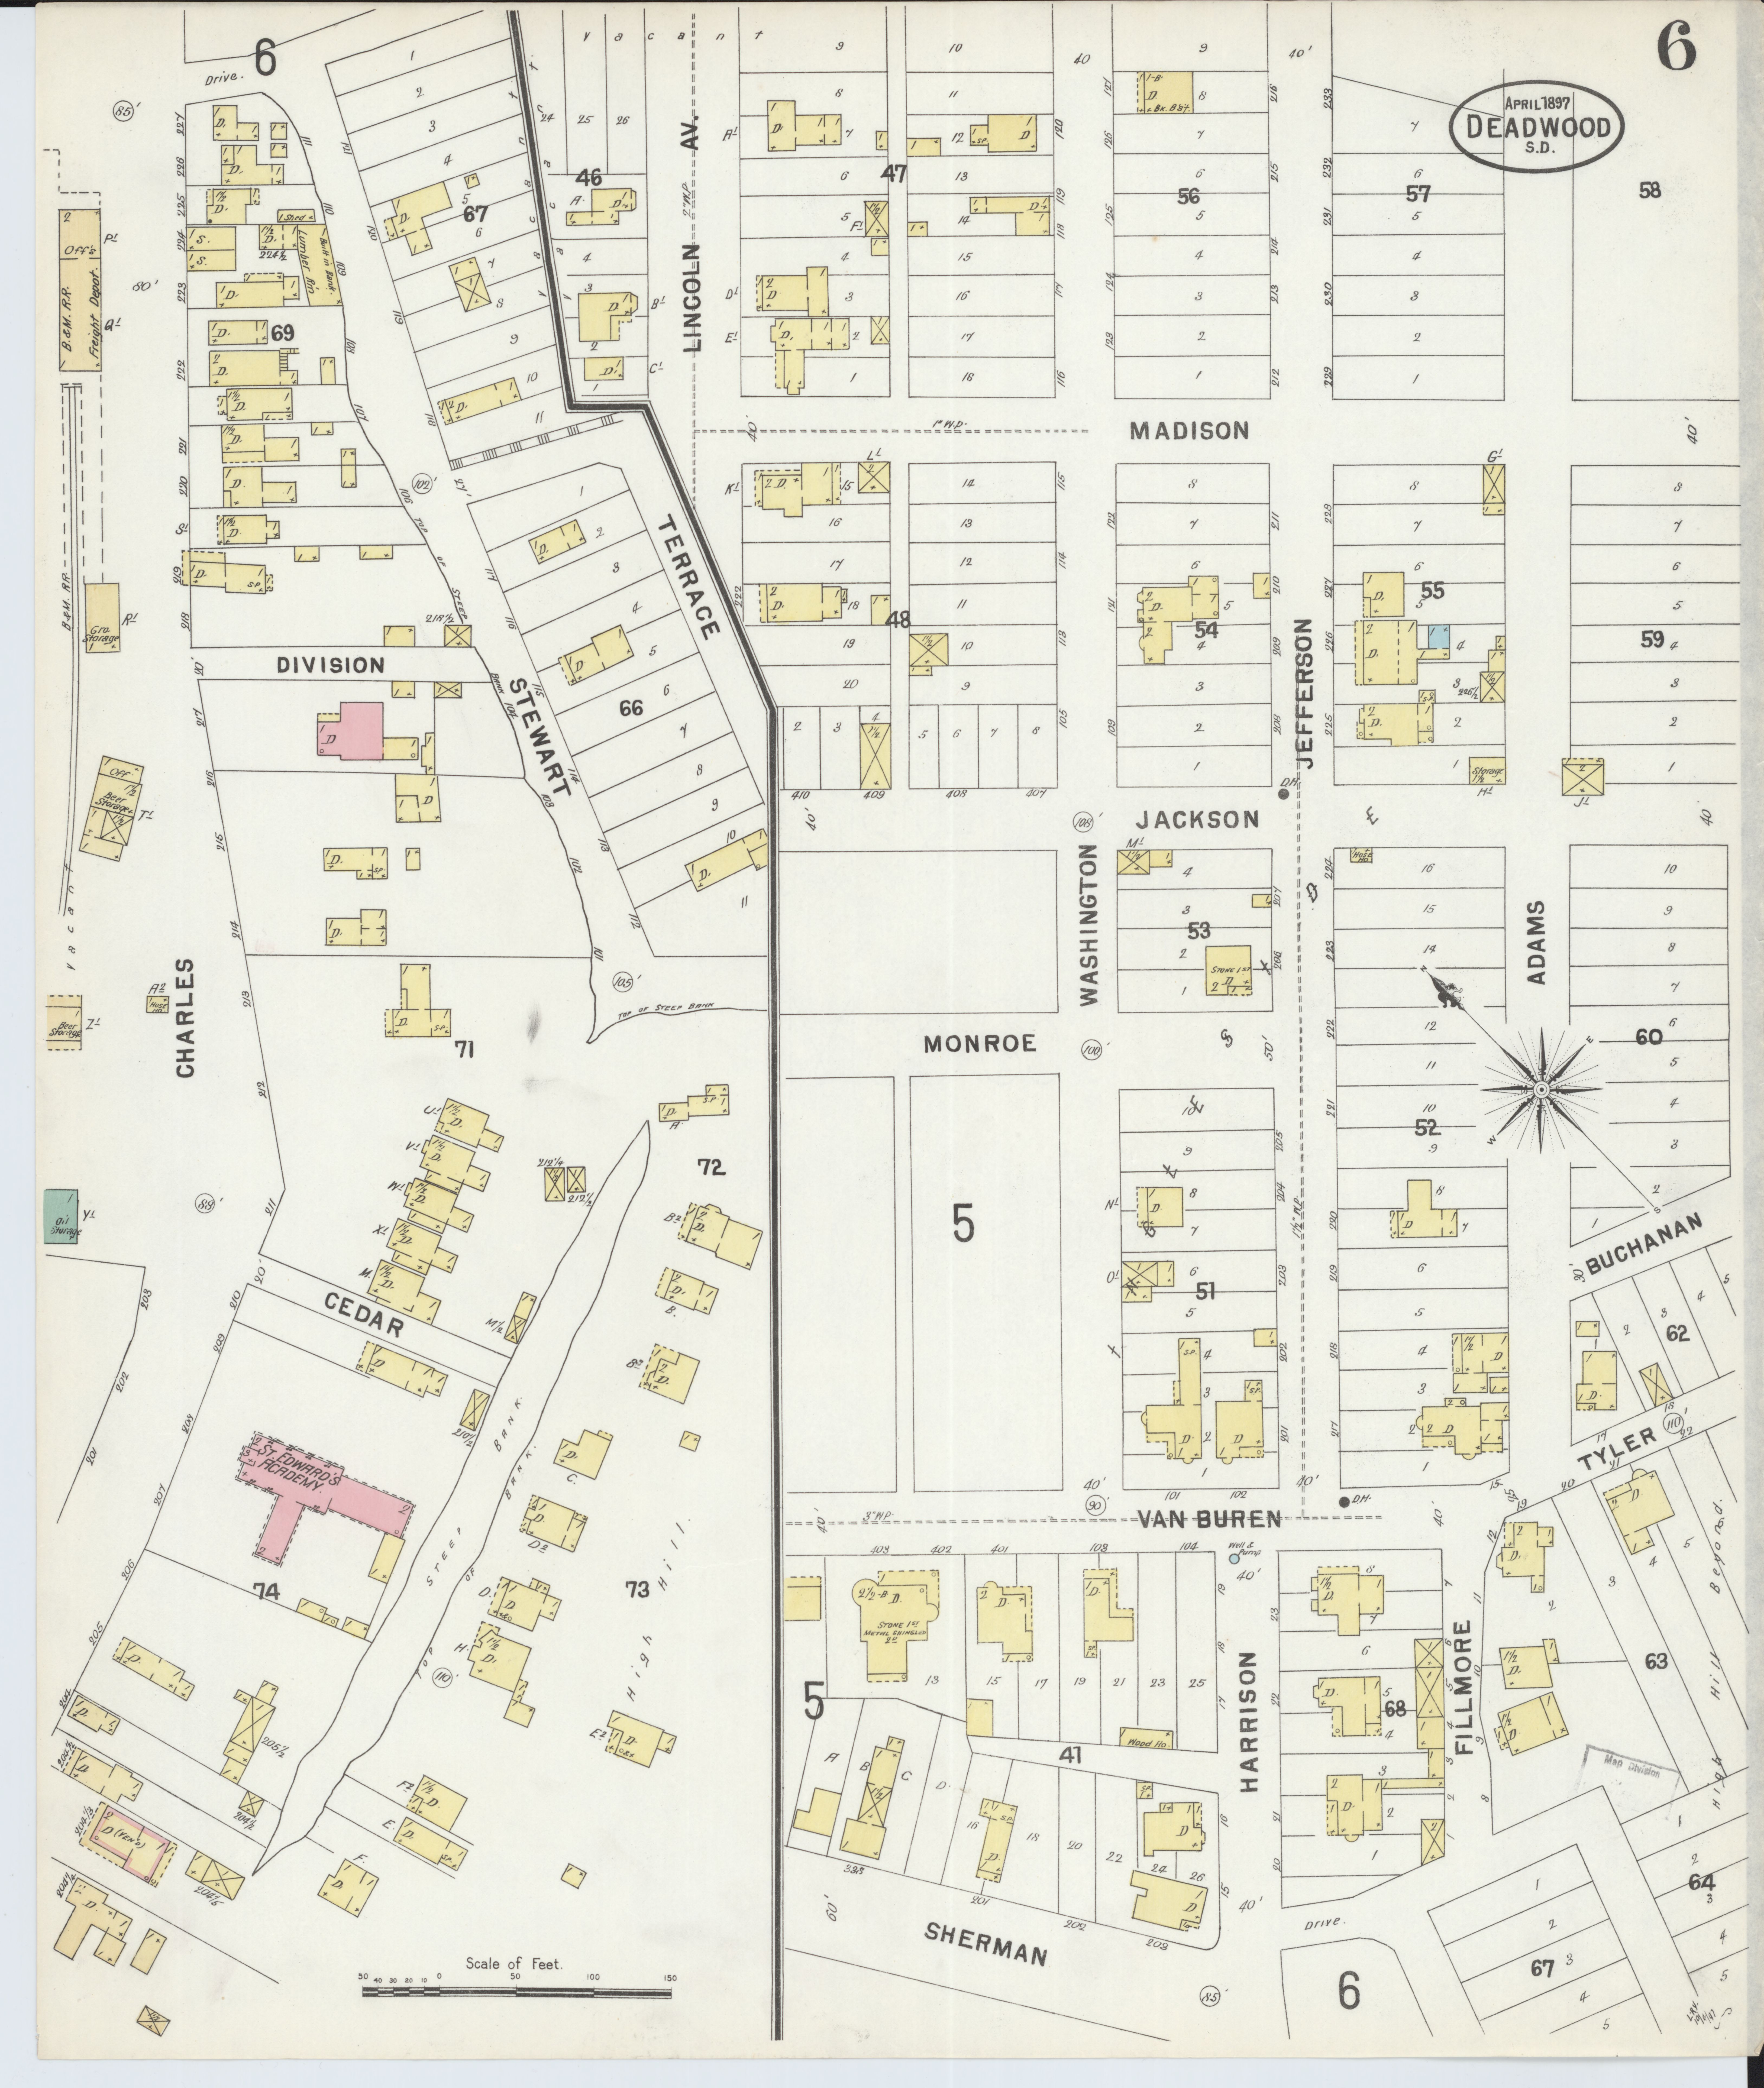 File:Sanborn Fire Insurance Map from Deadwood, Lawrence County ... on